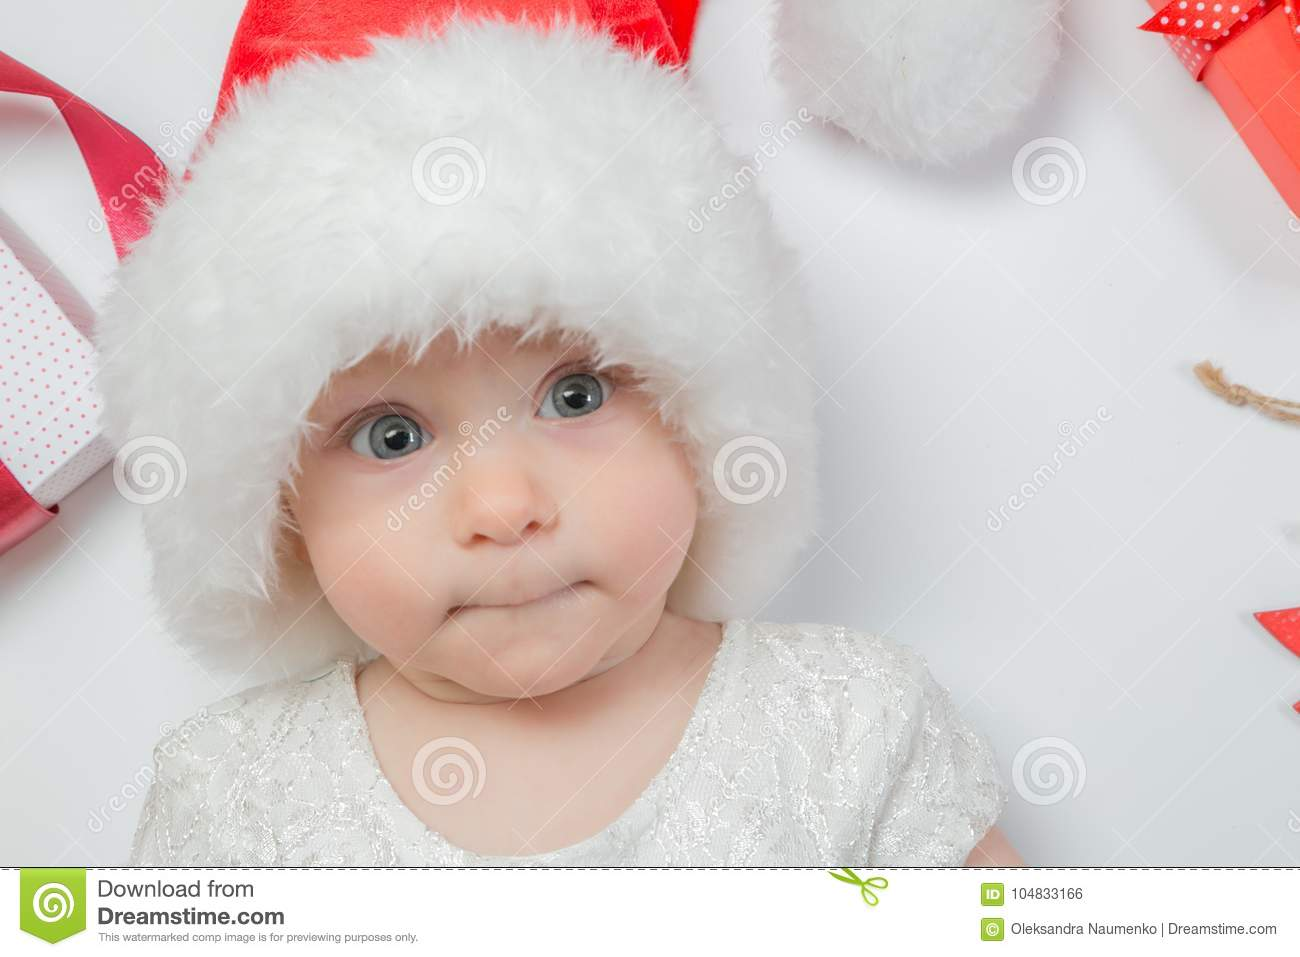 dcbfe5c83 Baby Lying With Presents In Santa Hat On White Background Stock ...